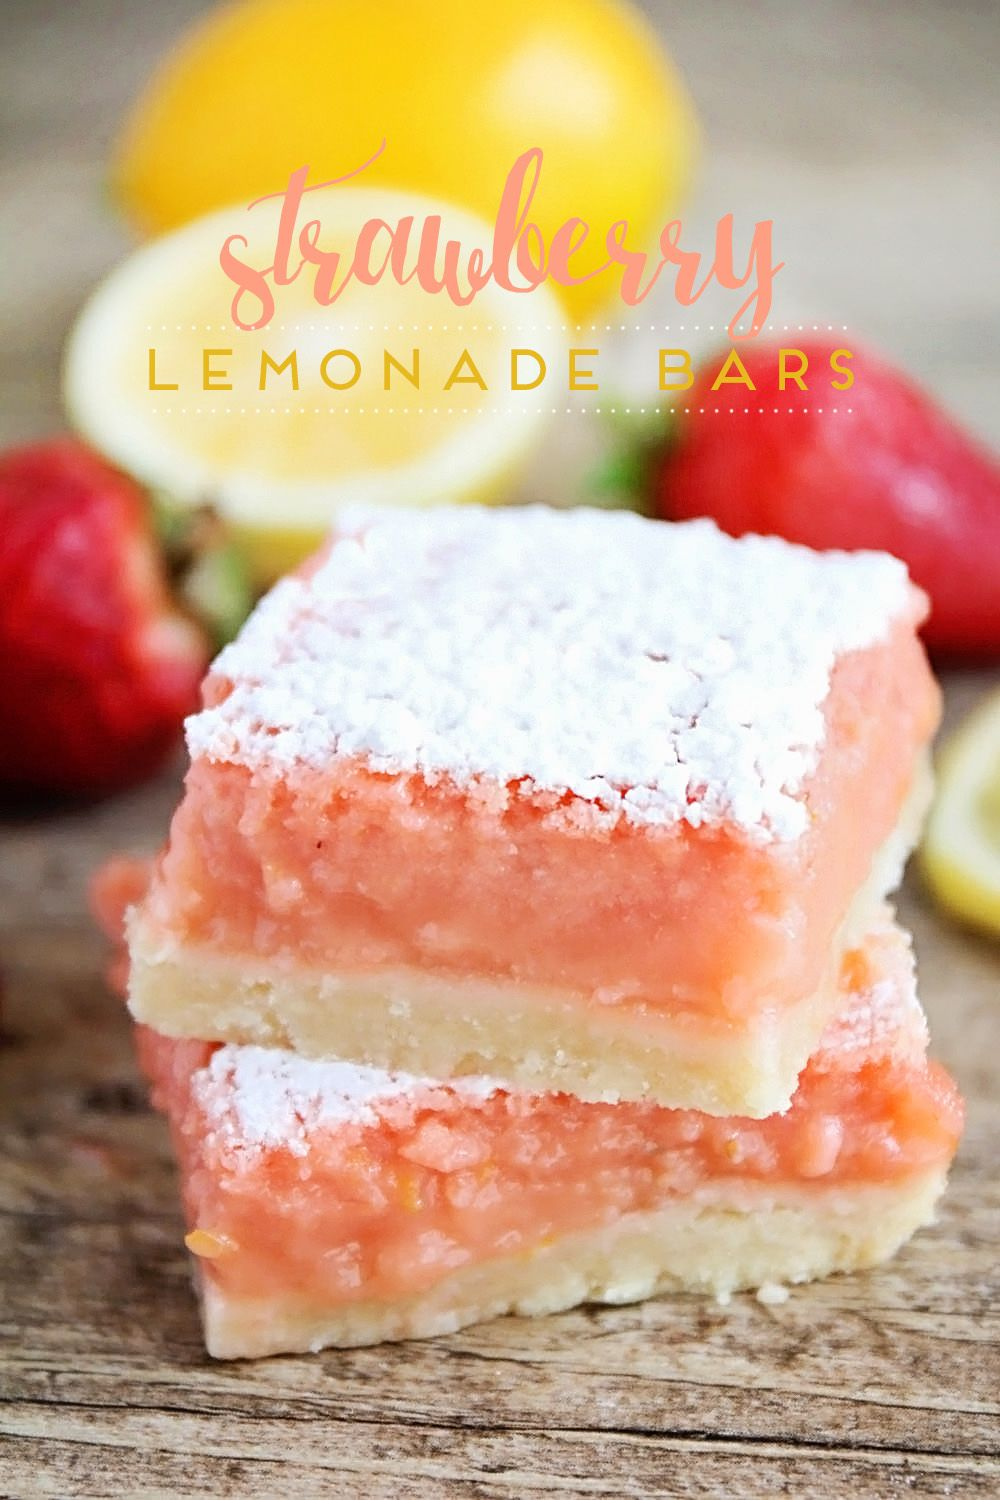 Coole Backideen Strawberry Lemonade Bars Sweets For The Sweet Tooth Coole